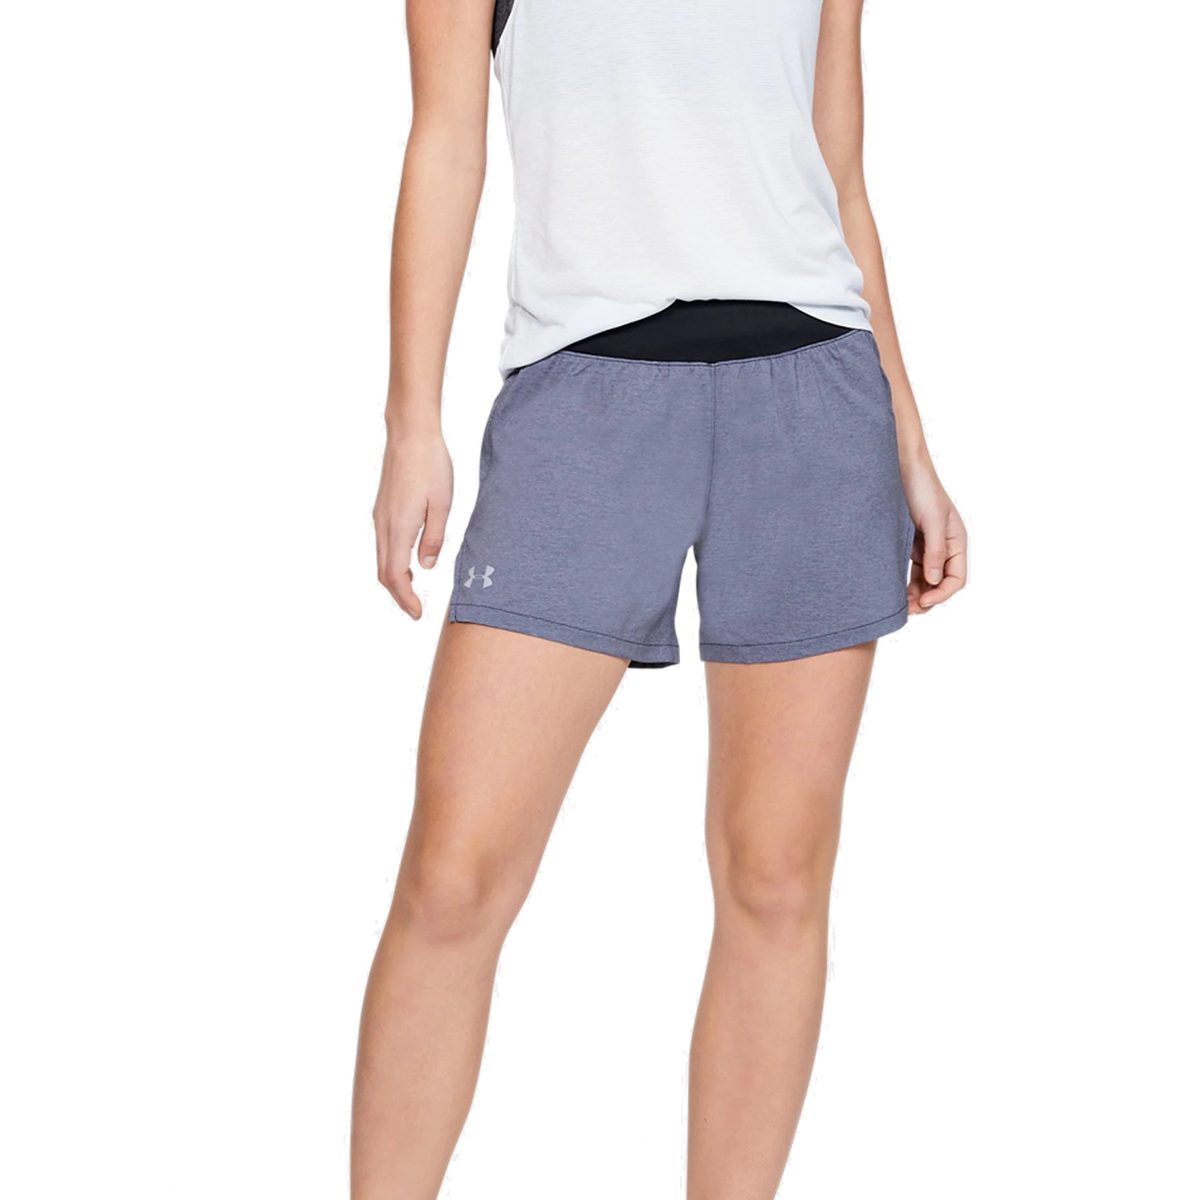 Women's Under Armour Launch SW 5in Shorts - Color: Black Full Heather/Black/Reflective - Size: S, Black Full Heather/Black/Reflective, large, image 1